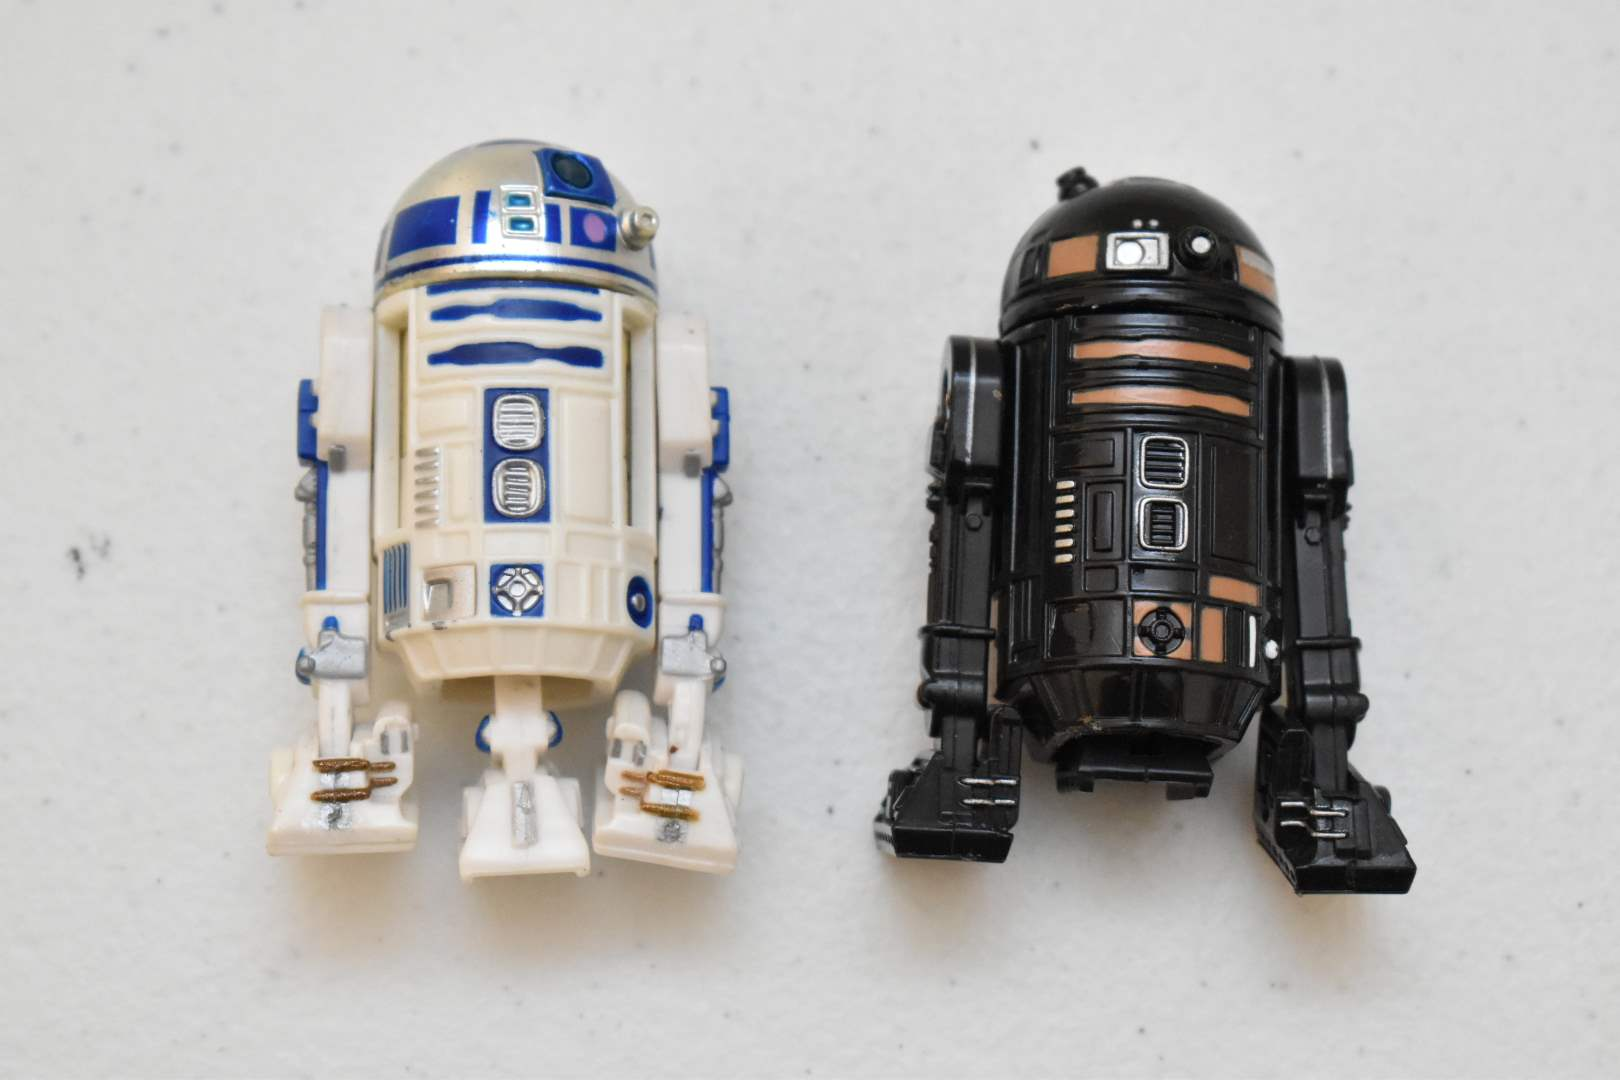 Vintage STAR WARS R2-D2 and R2-Q5